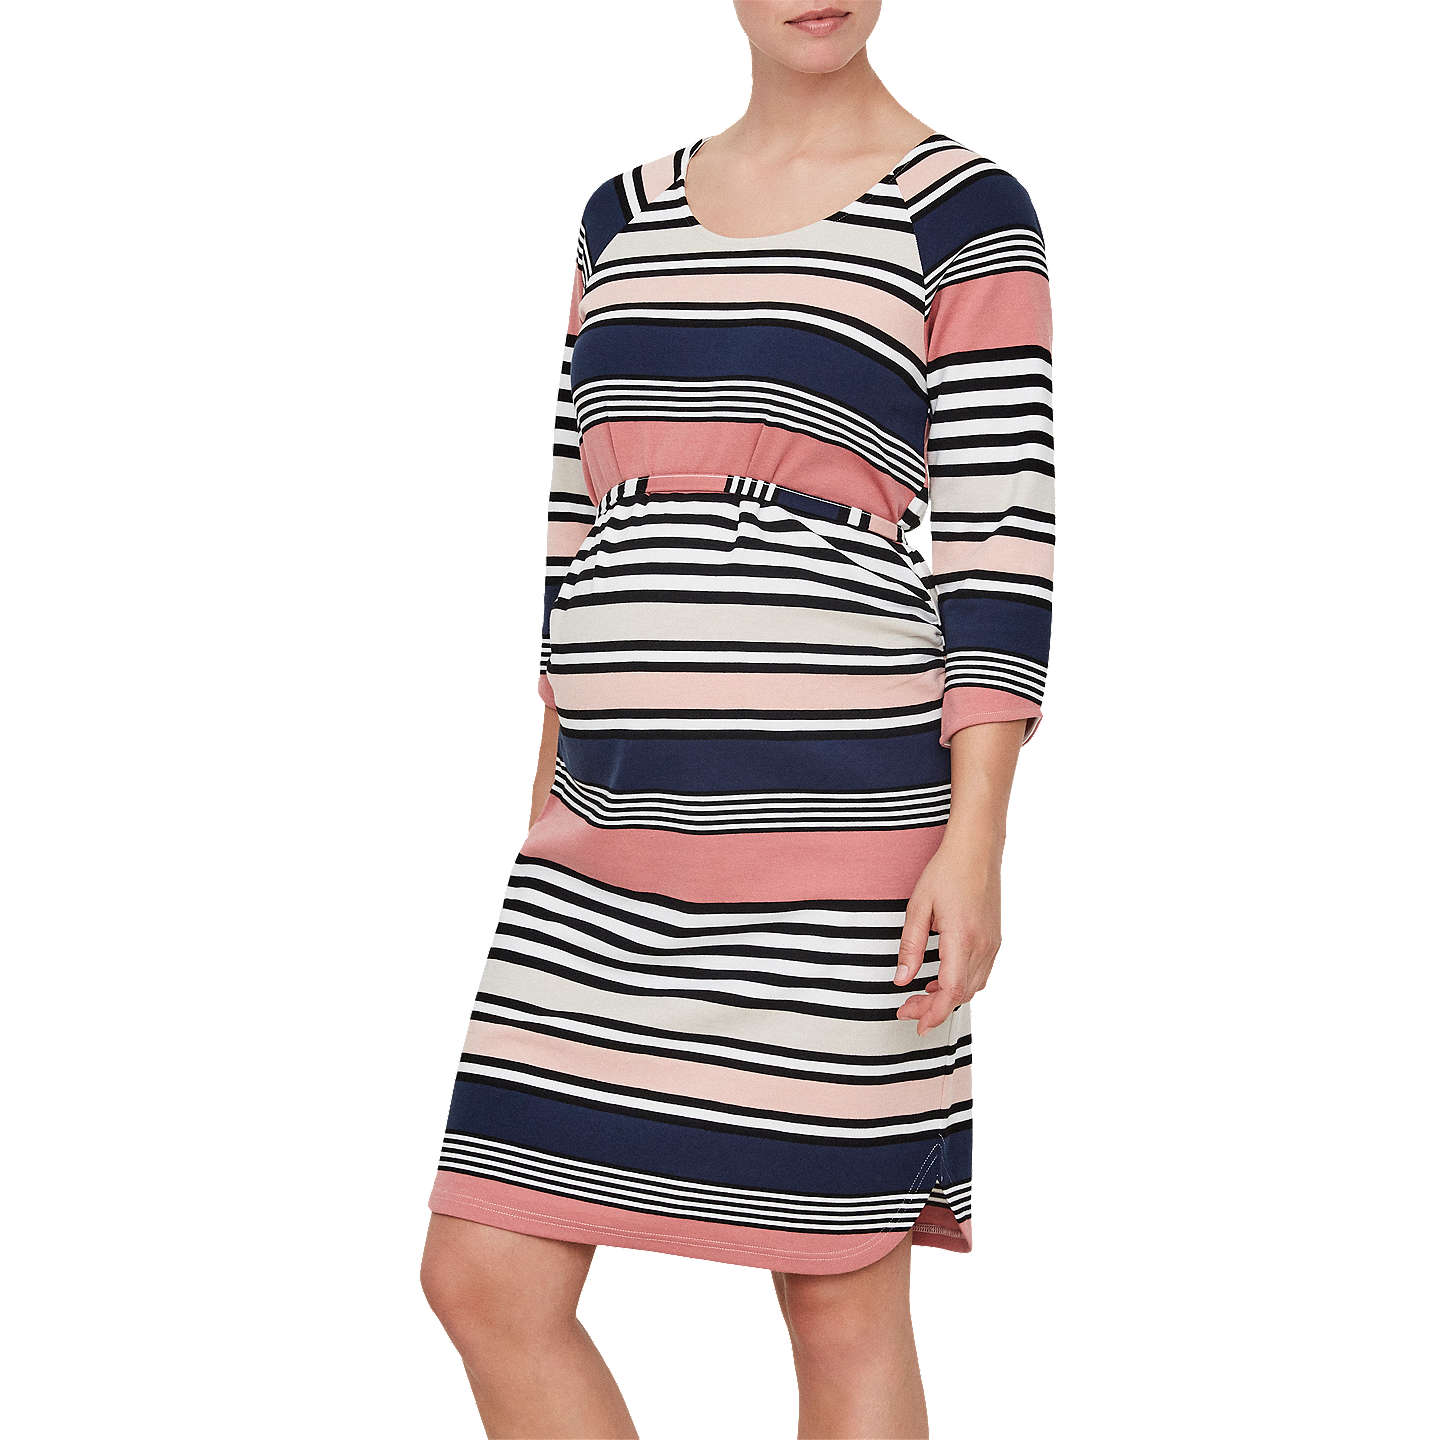 BuyMamalicious Dizzy 3/4 Jersey Maternity Dress, Rose, S Online at johnlewis.com